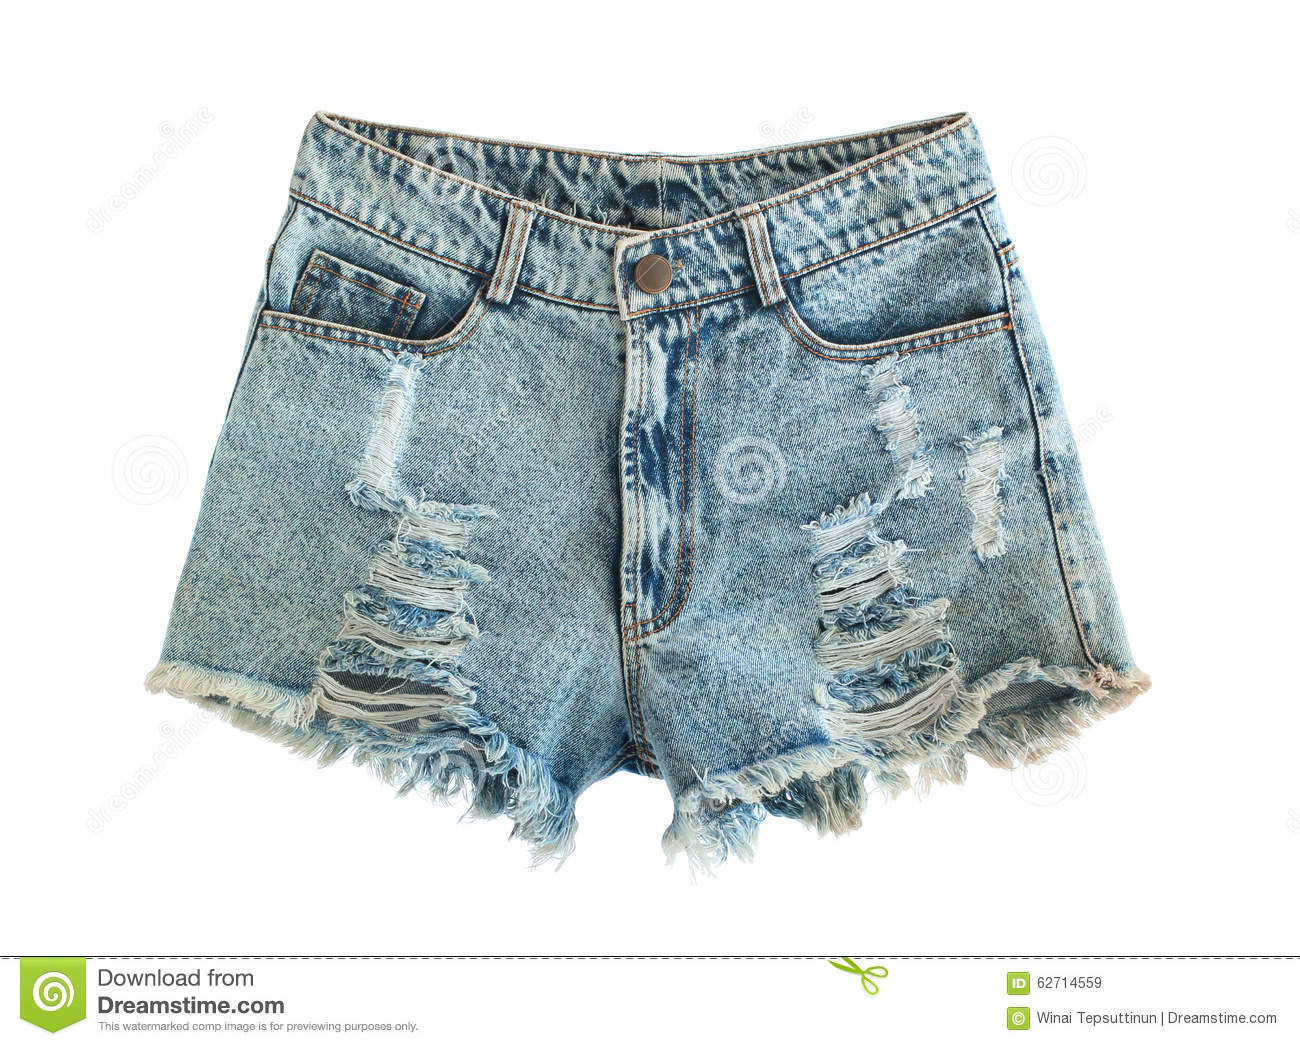 Ripped Jeans Shorts Stock Photo - Image: 62714559